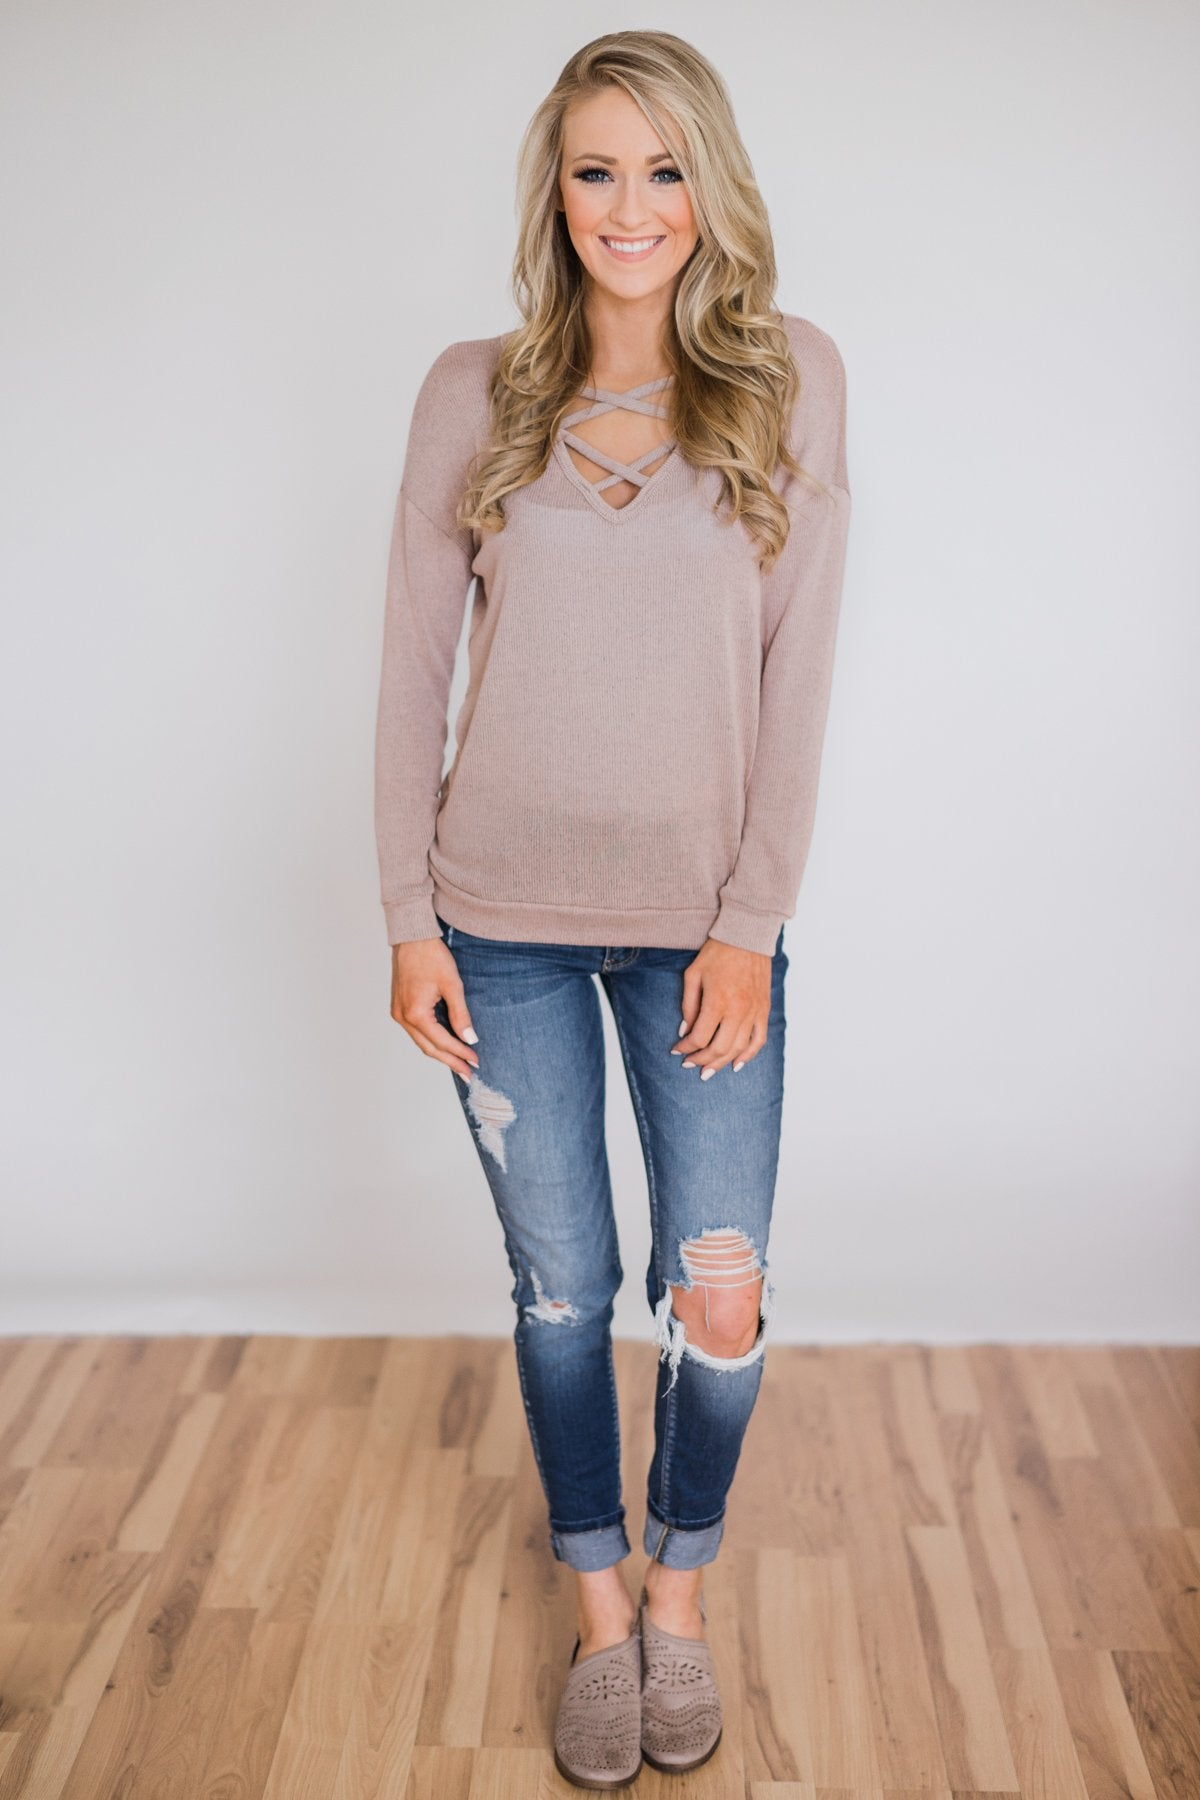 Comfy Knit Criss Cross Long Sleeve Top- Taupe